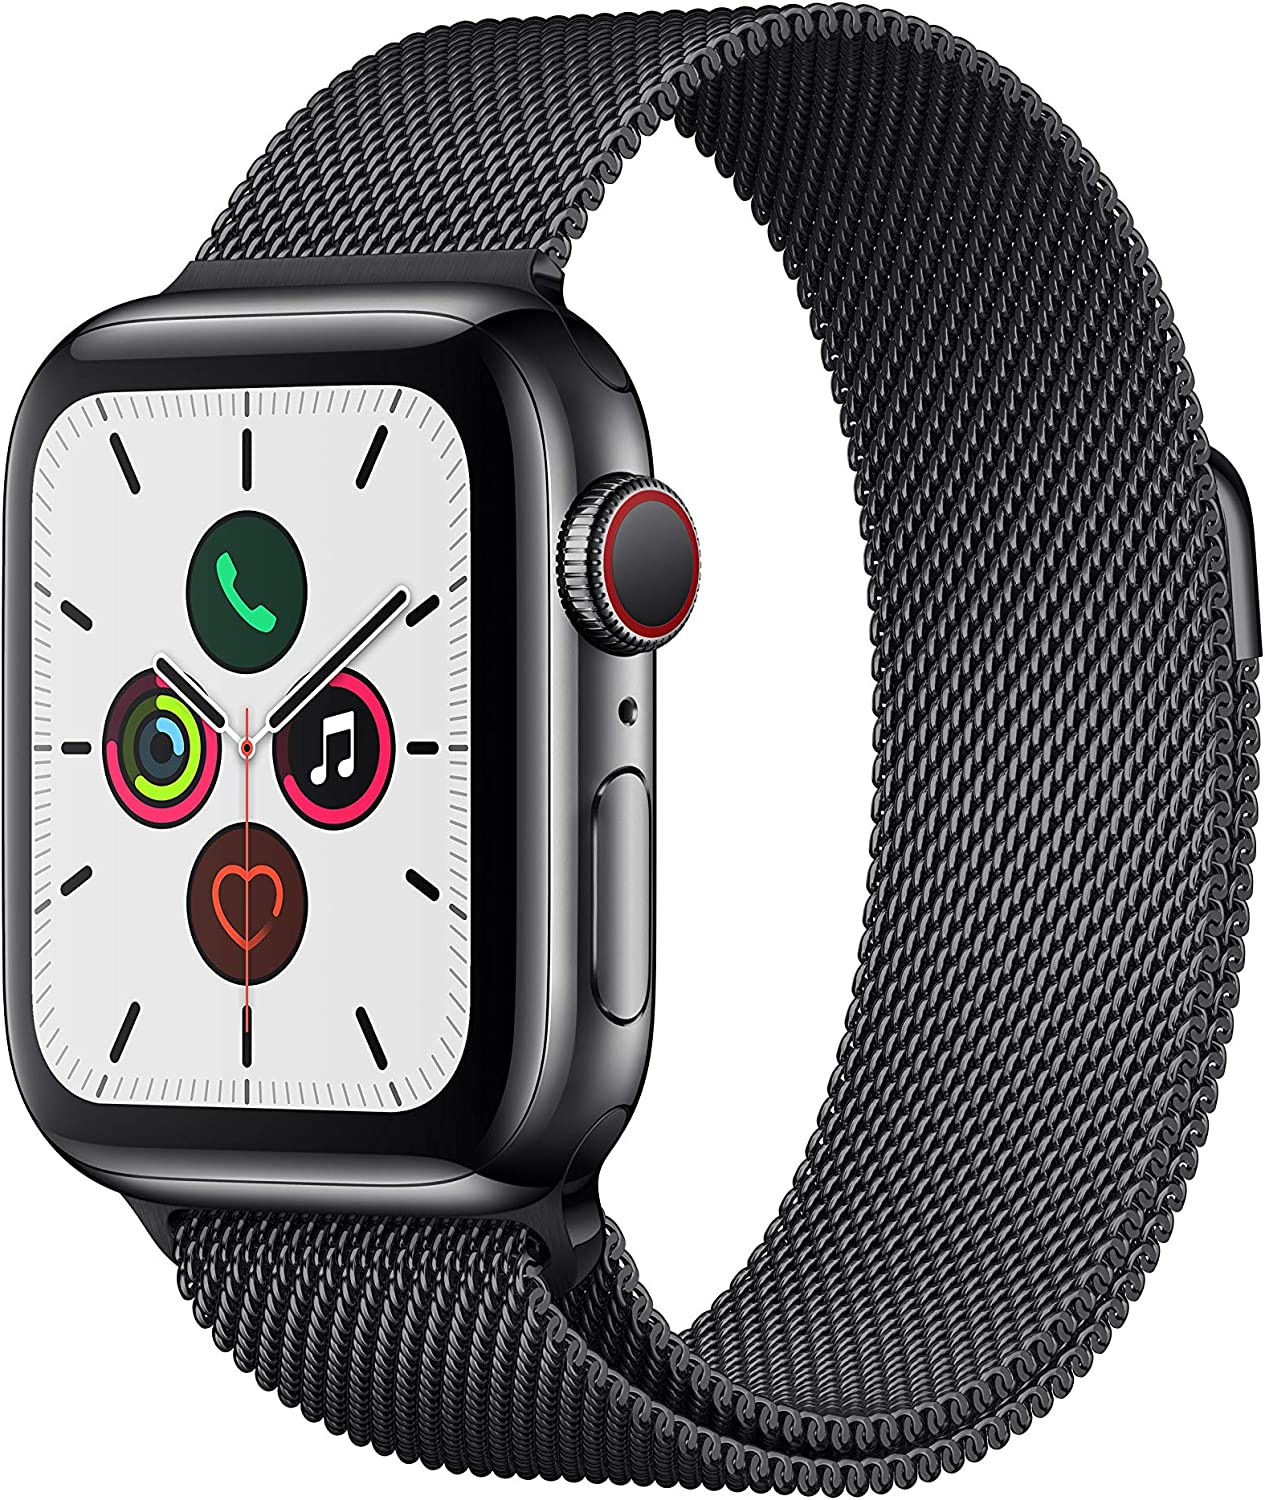 Apple Watch Series 5 (GPS + Cellular, 40 mm) Acero Inoxidable en Negro Espacial con Milanese Loop Negro Espacial